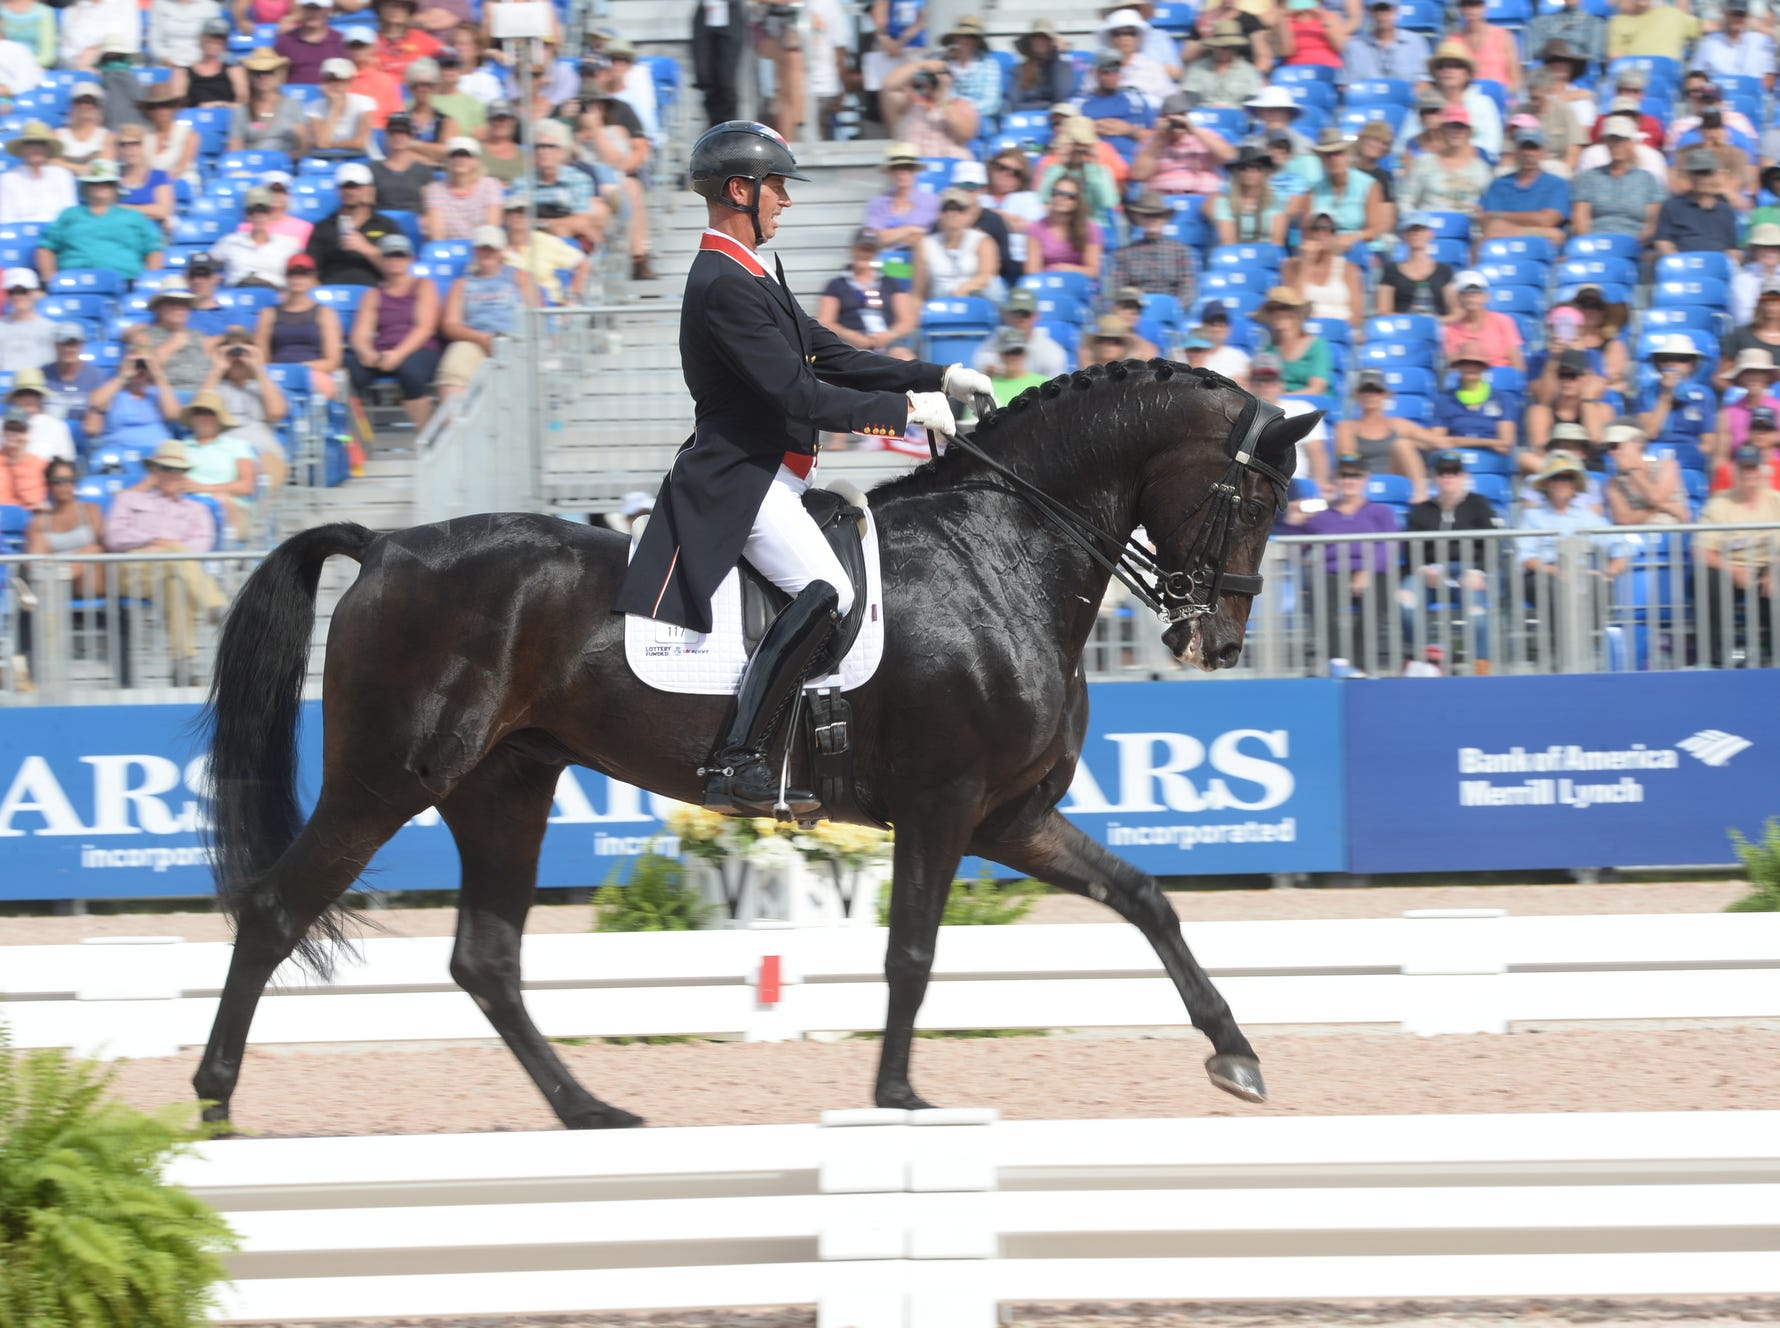 Great Bristain's Carl Hester rides Hawtins Delicato in the dressage competition at the World Equestrian Games in Tryon Sept. 14, 2018.